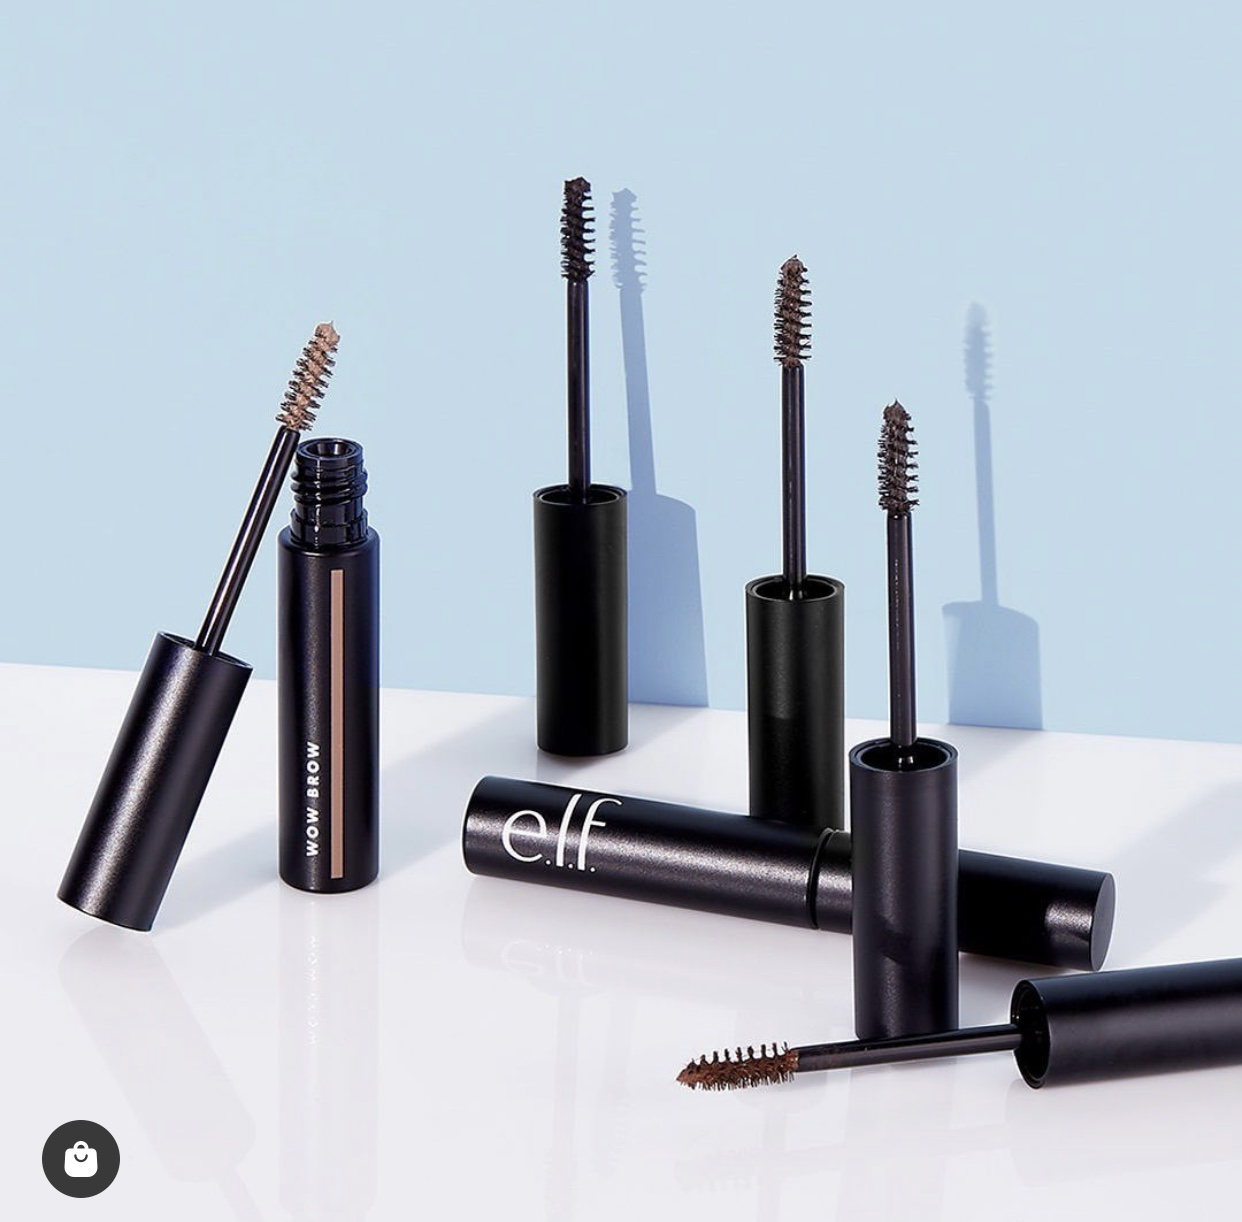 The Elf Wow Brow is one of the best drugstore brow gels